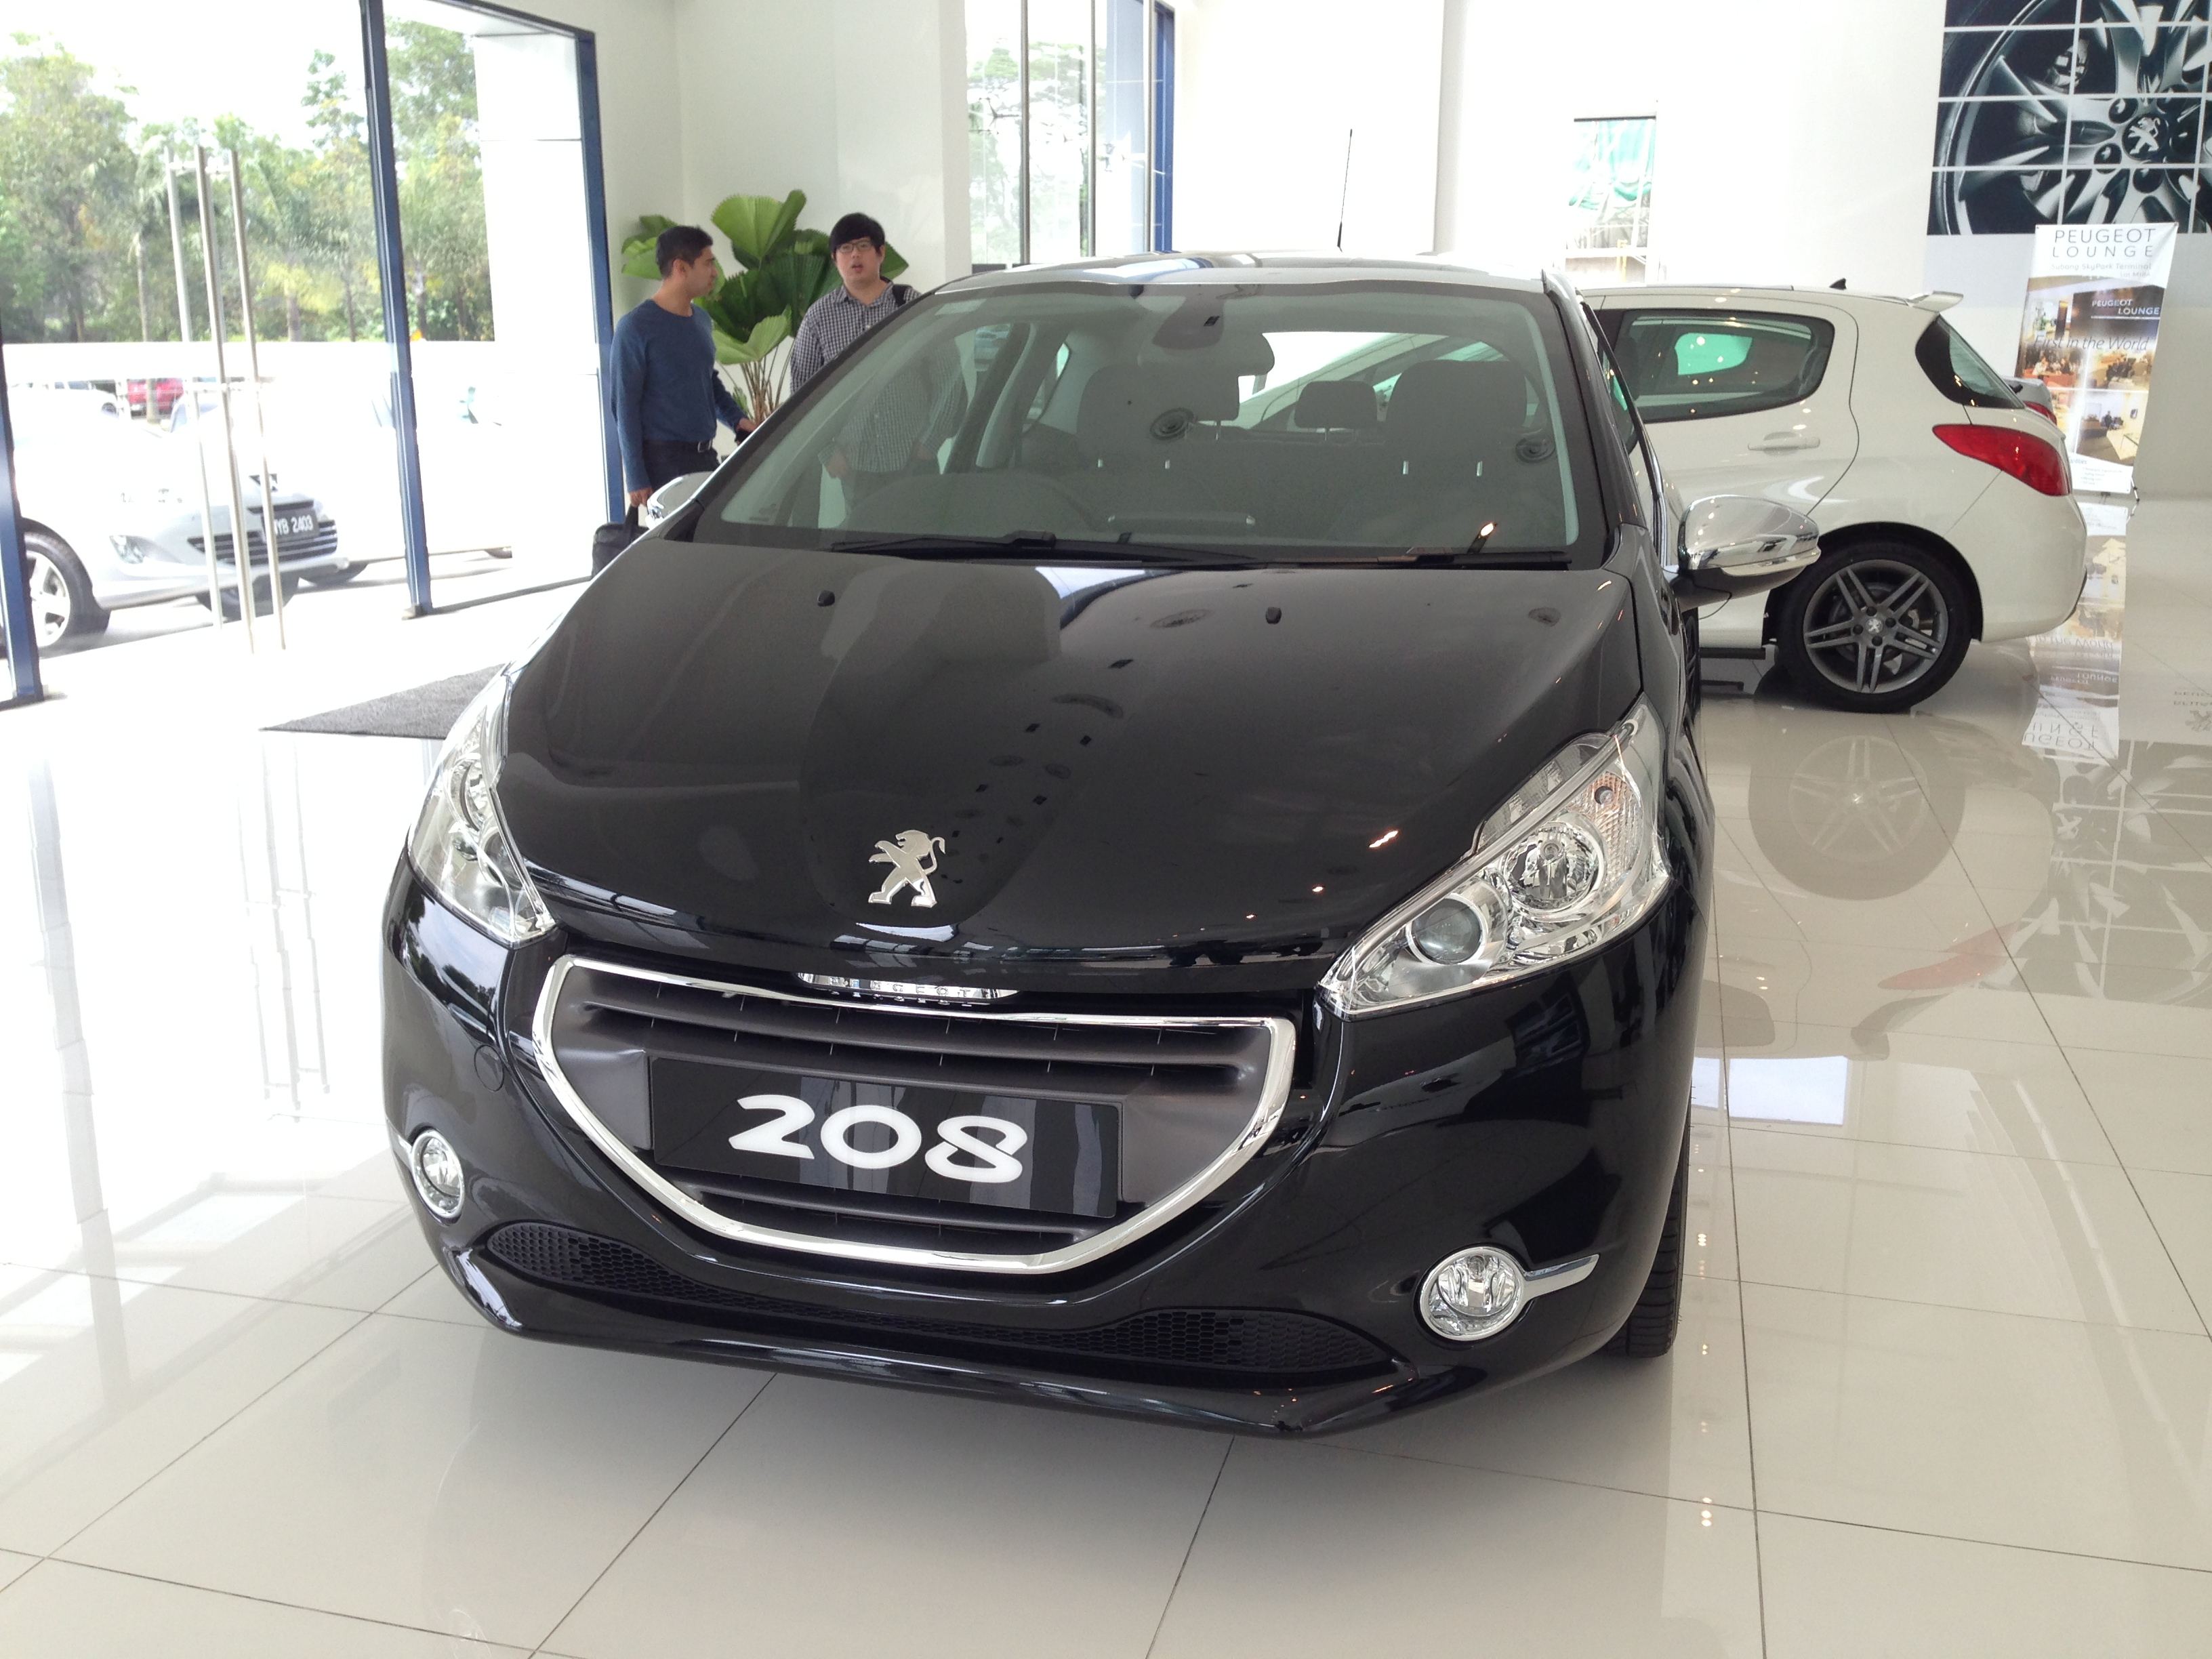 peugeot 208 on display specs unveiled via brochures image 167834. Black Bedroom Furniture Sets. Home Design Ideas